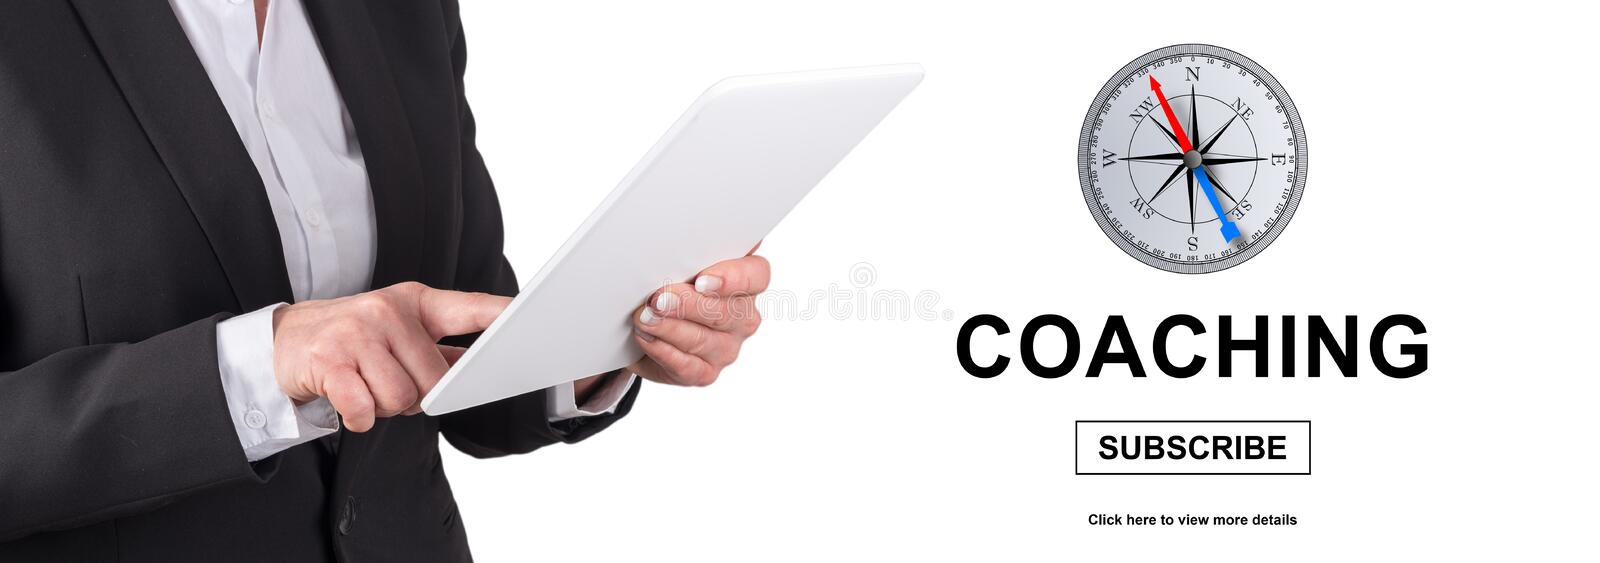 Concept of coaching royalty free stock images